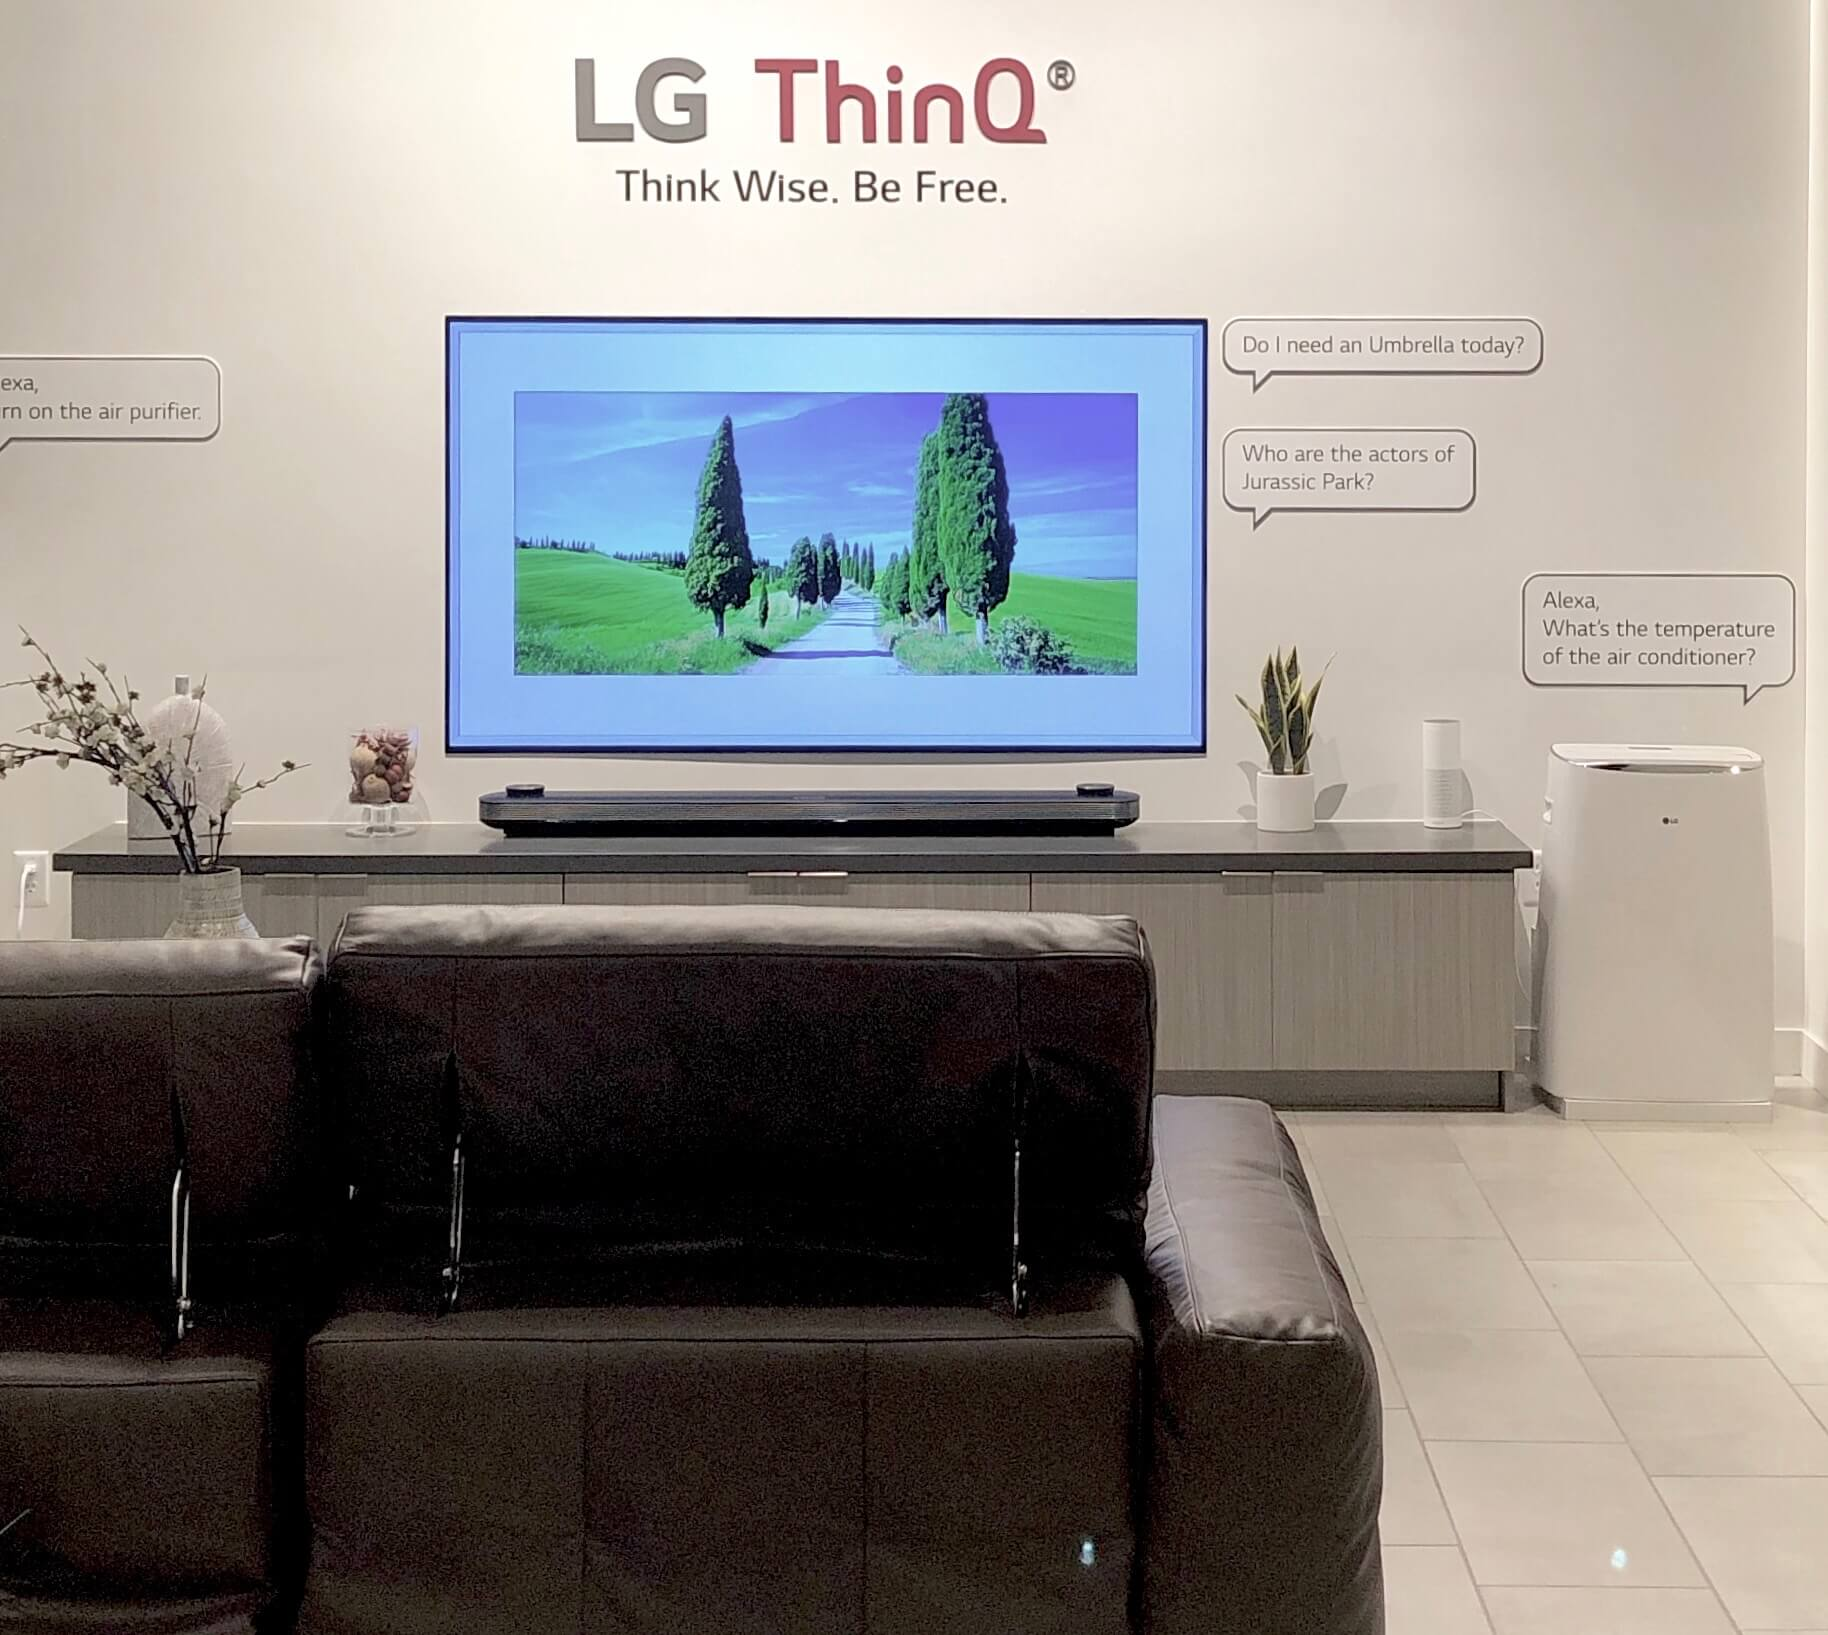 LG OLED tv | SKS Appliances Experience and Design Center, Napa